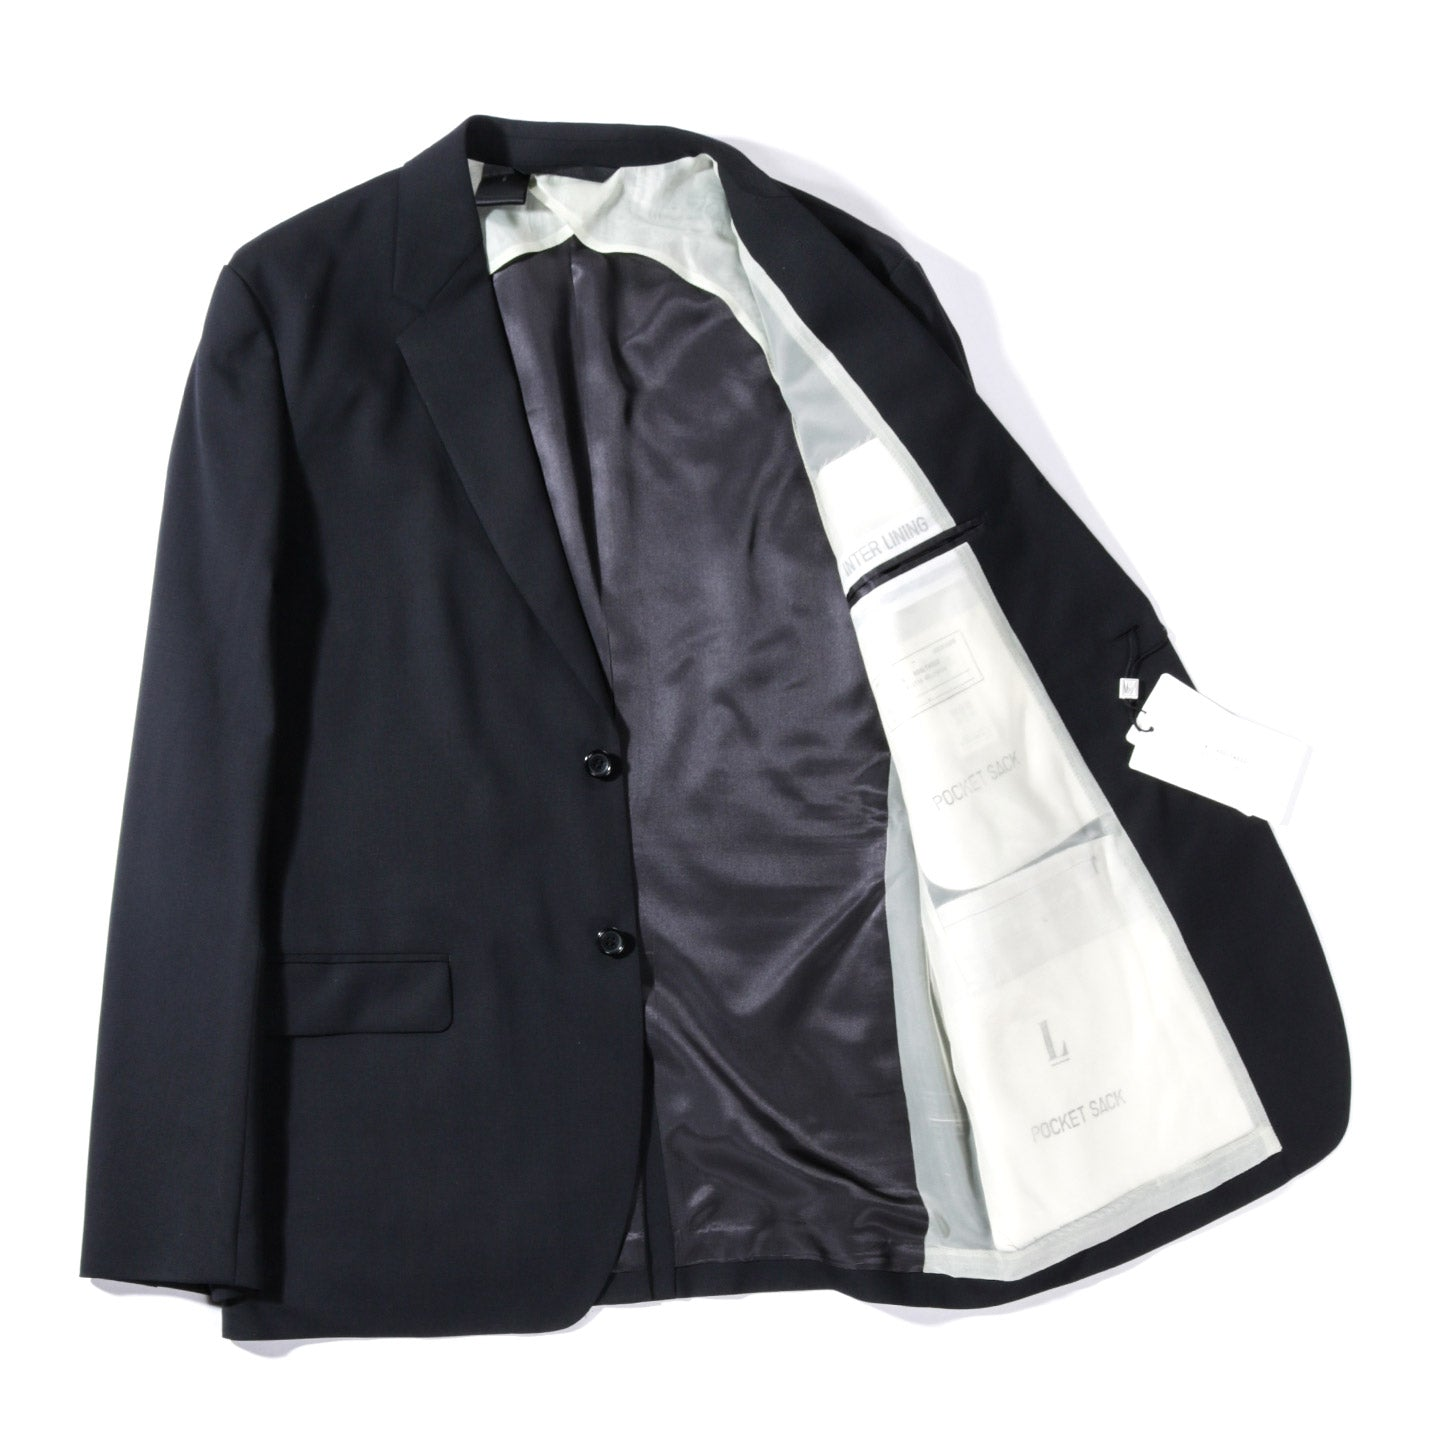 N.HOOLYWOOD 282-JK04 SUIT JACKET BLACK